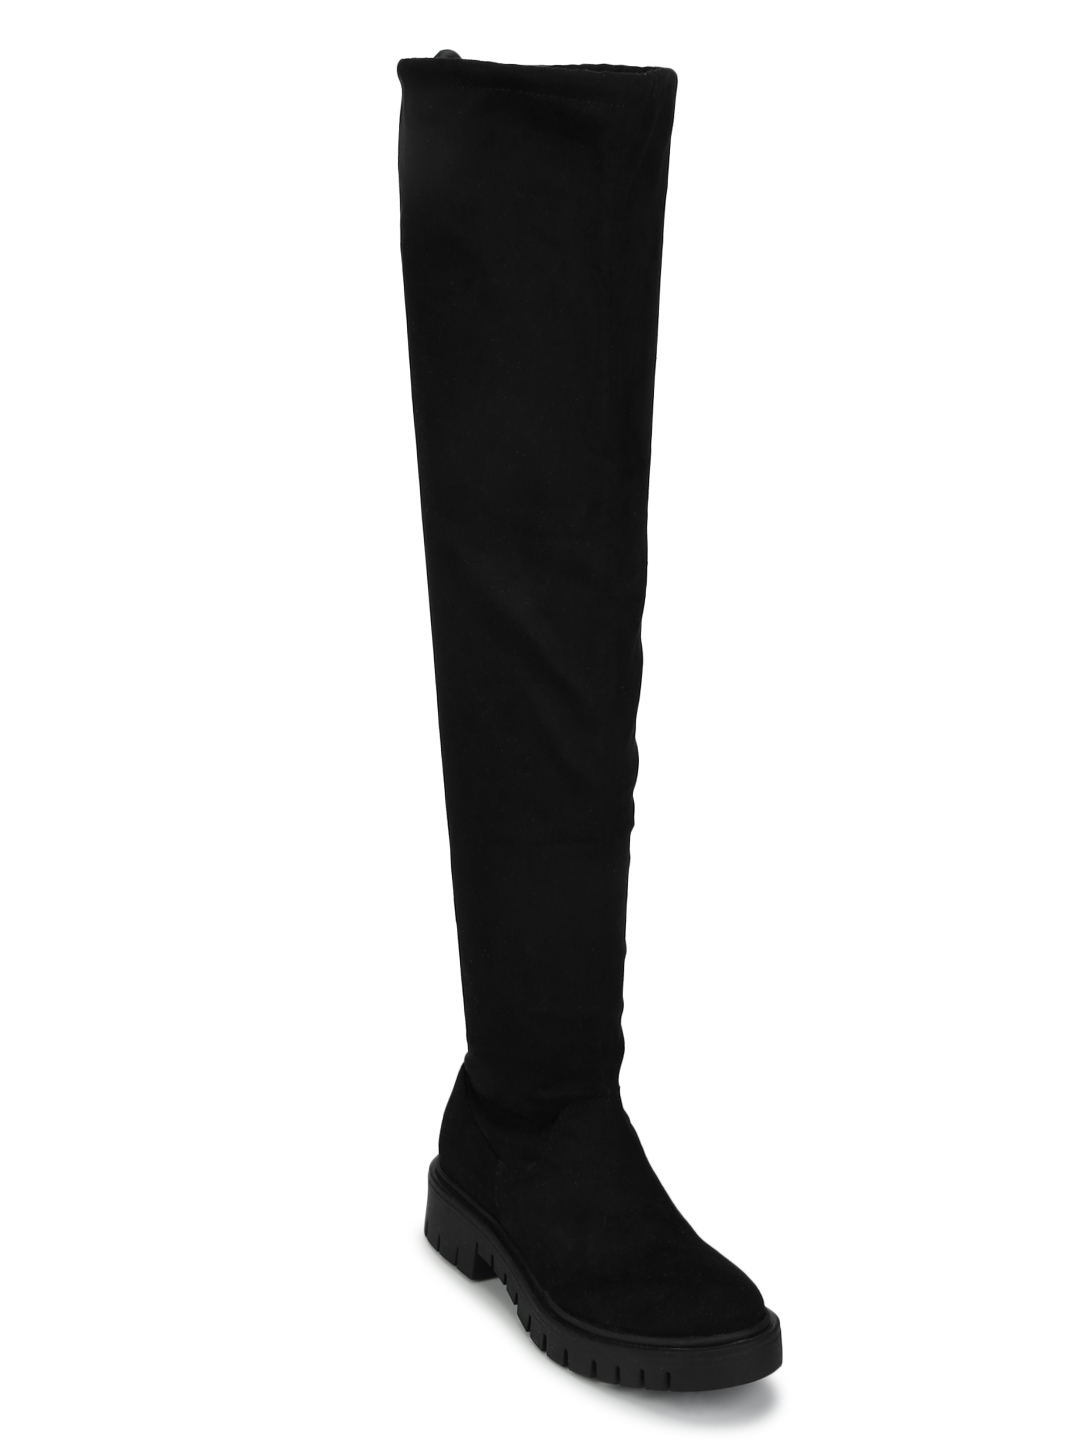 Truffle Collection | Truffle Collection Black Suede Thigh High Boots